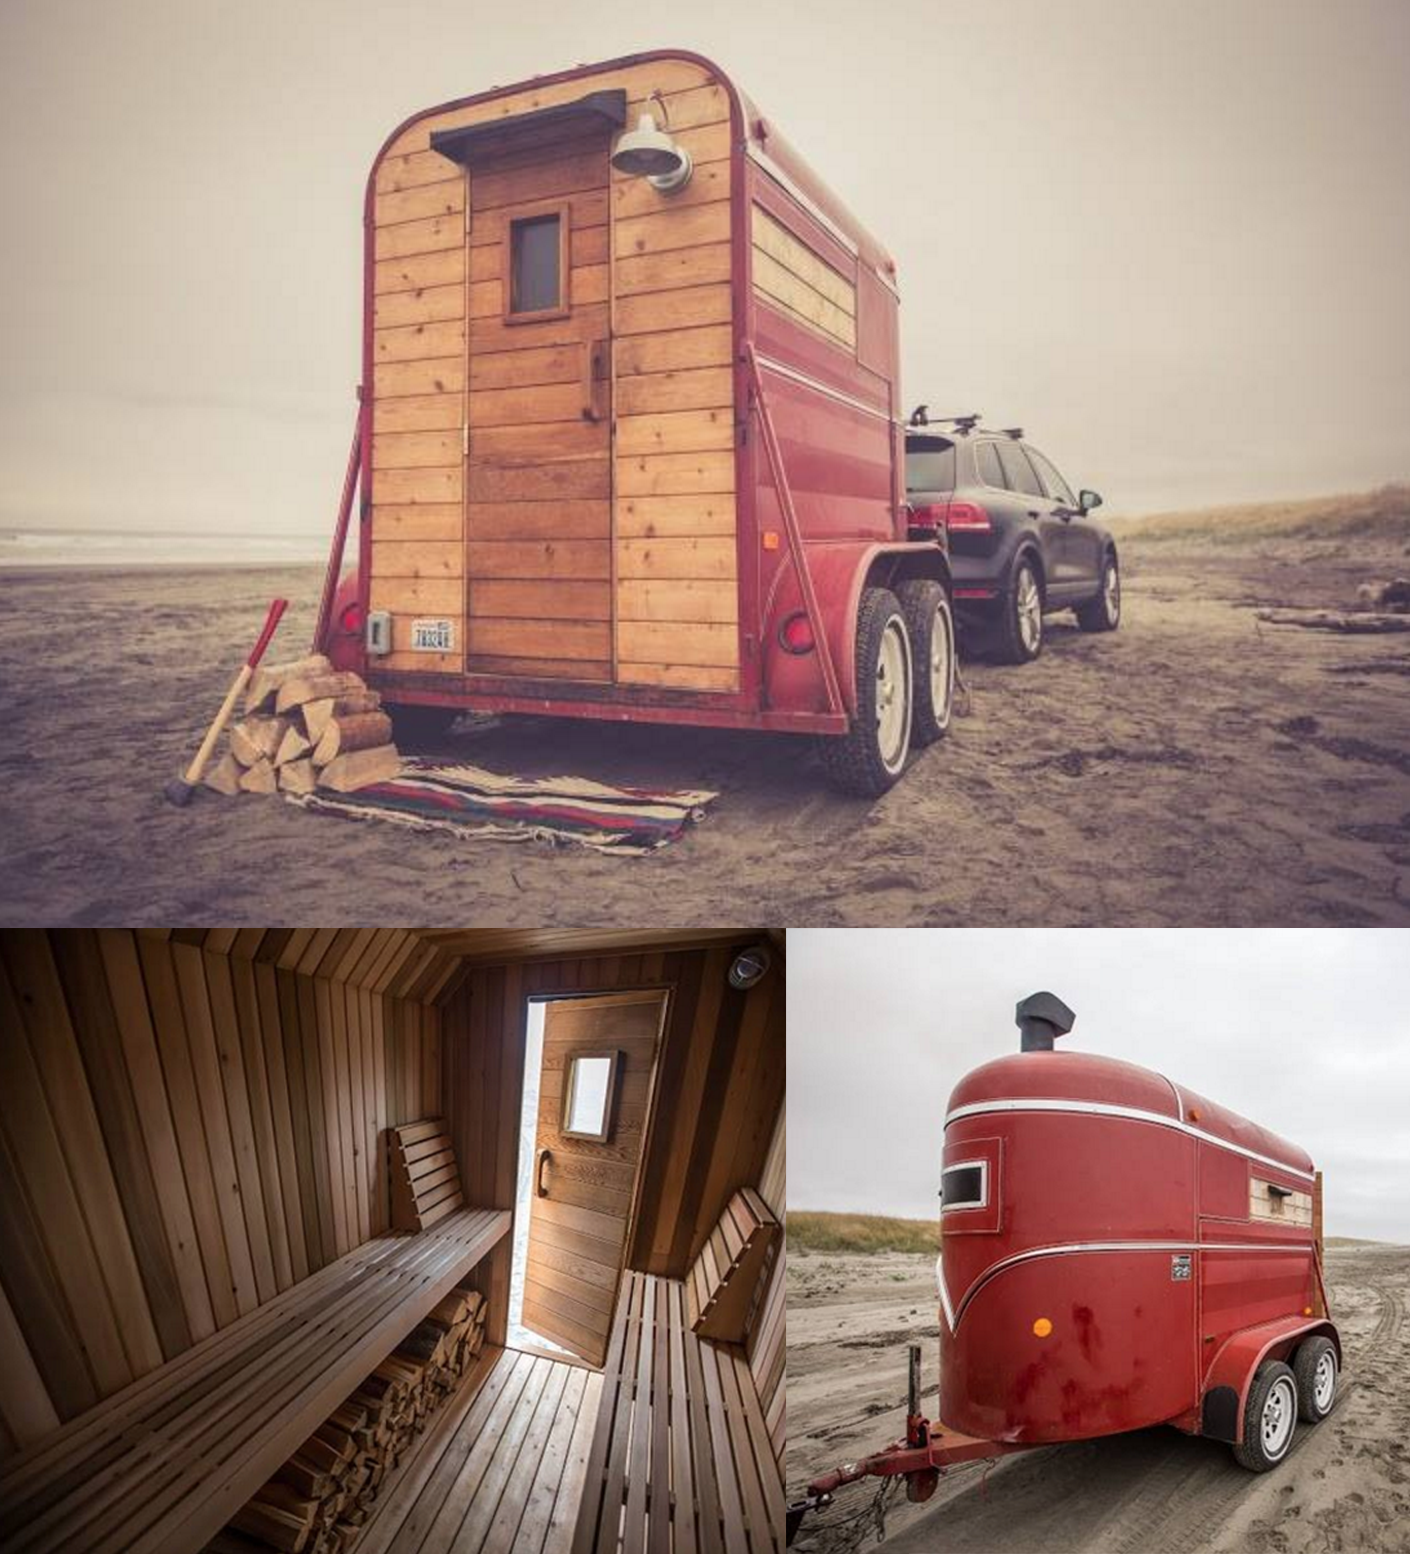 portable sauna trailer made by seattle based form shop fabrication